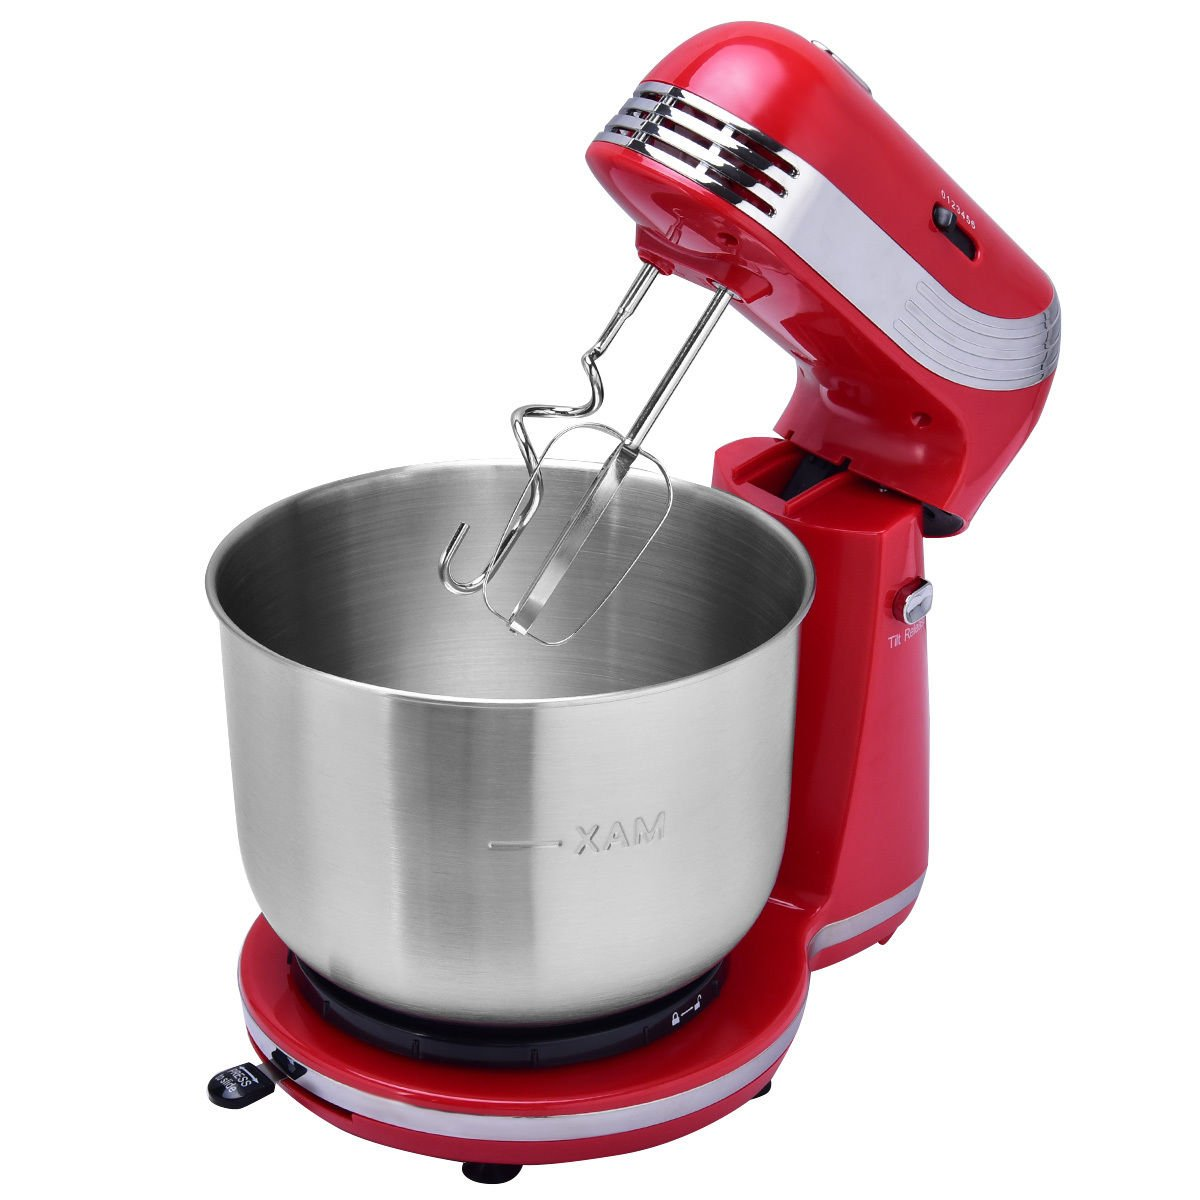 Costzon Electric Stand Mixer Tilt Head 6 Speed Food Mixer with 3 Quarts Stainless Steel Bowl, 2 Round Muddlers and 2 Spiral Muddlers